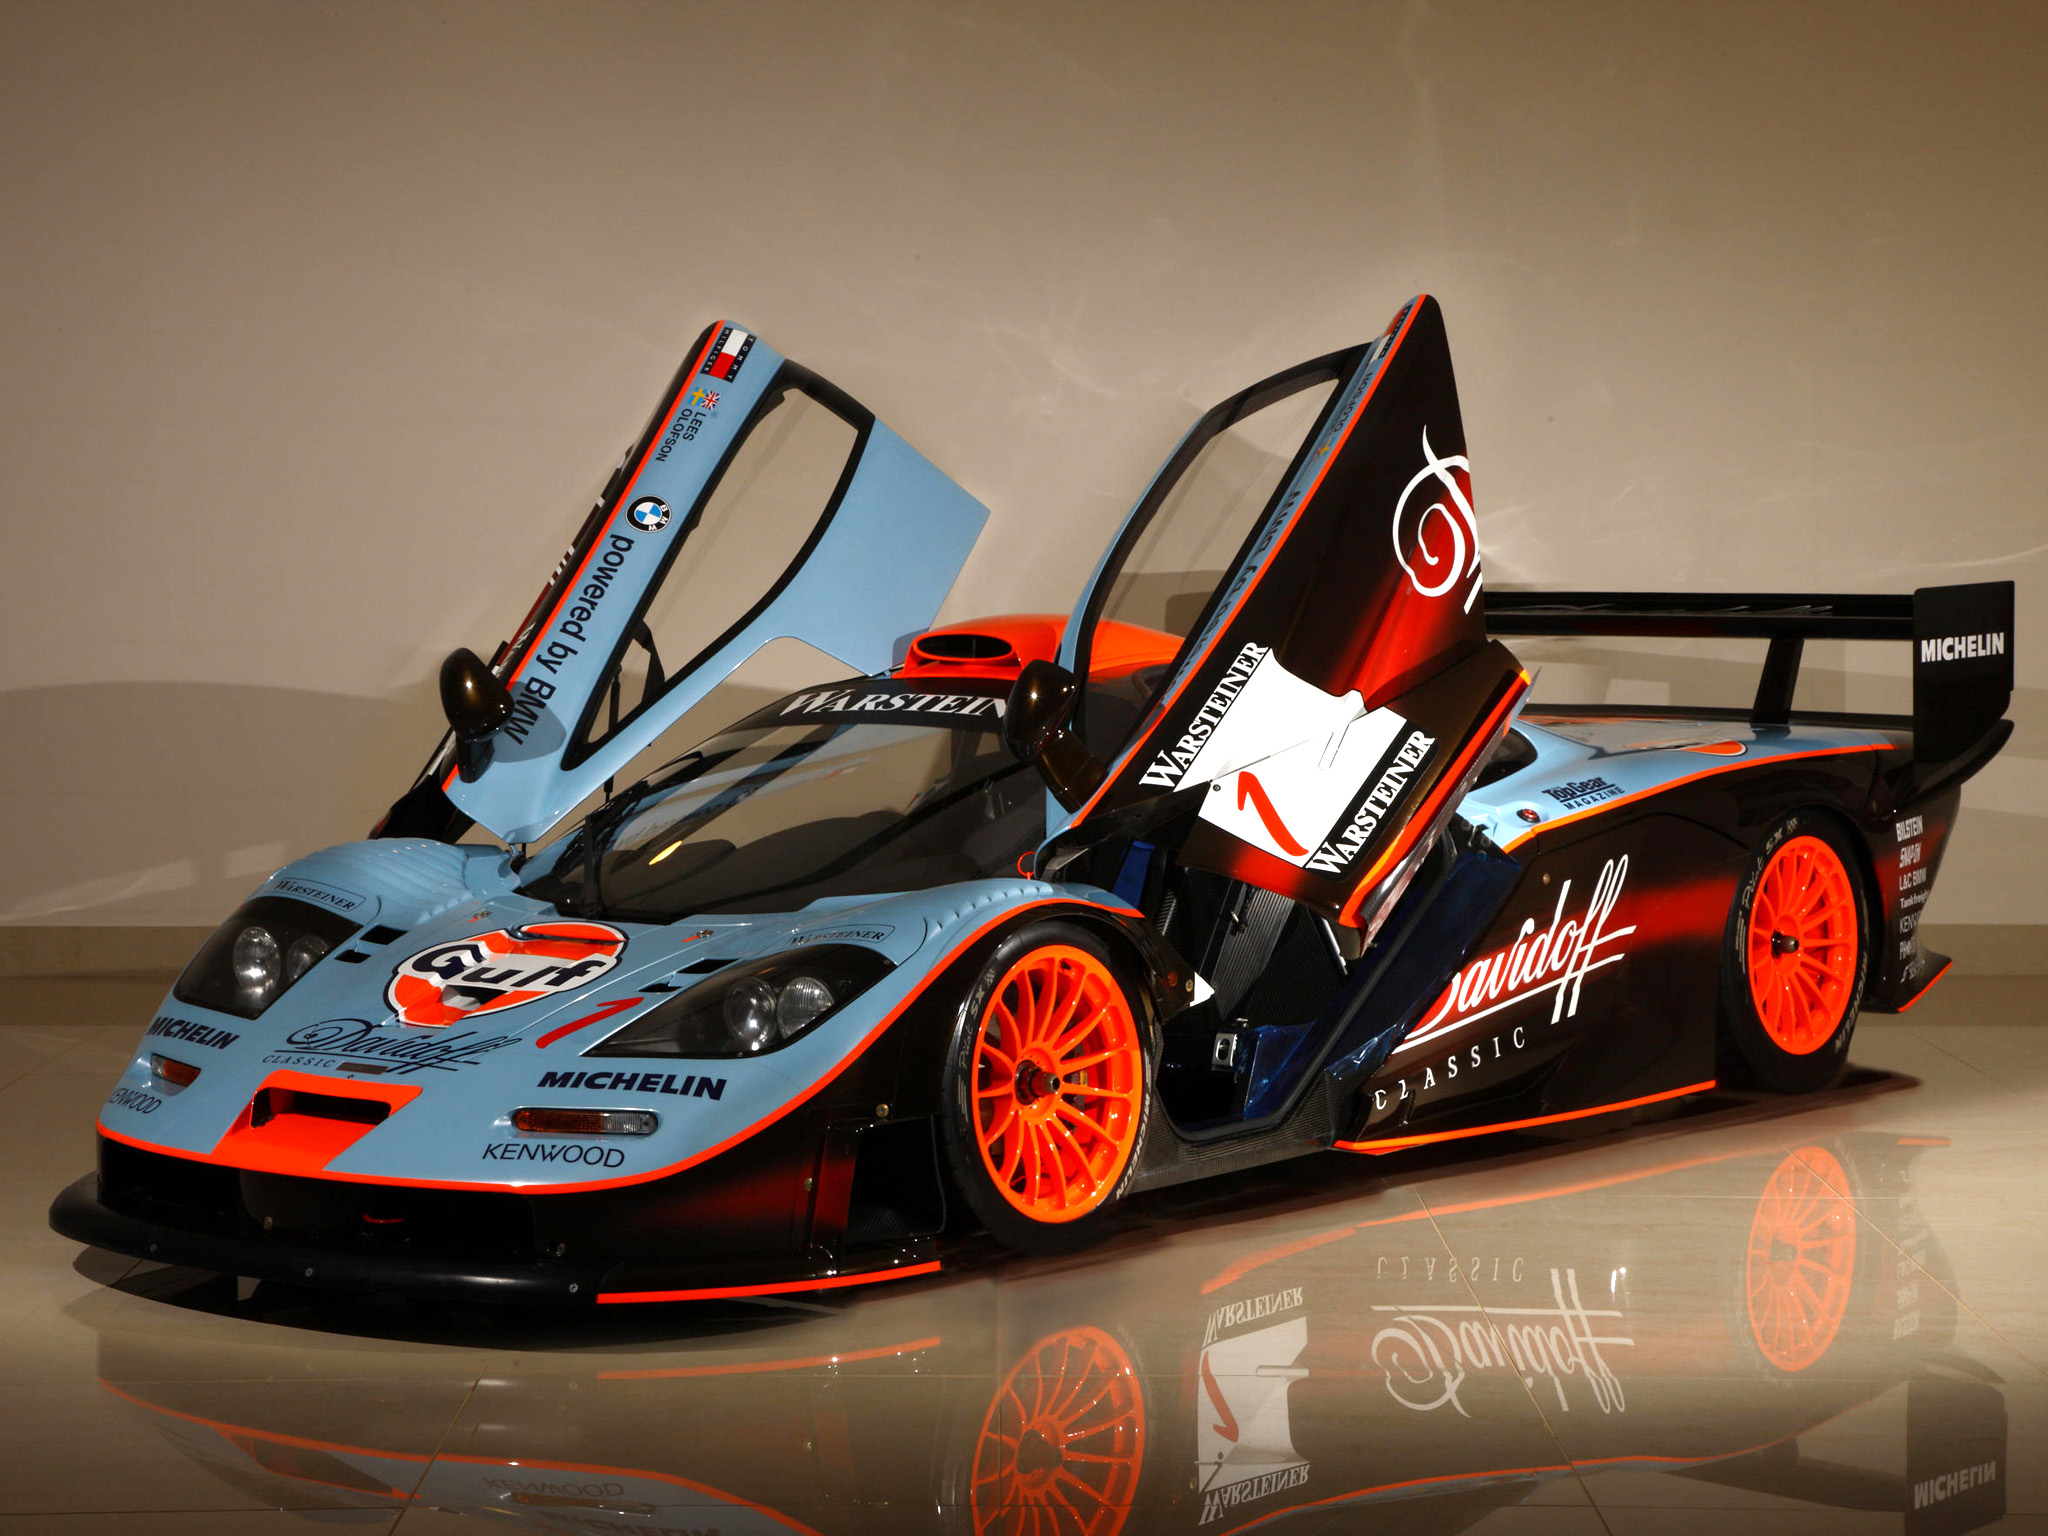 1997 Mclaren F1 Gtr Longtail Race Racing F 1 Ds Wallpaper